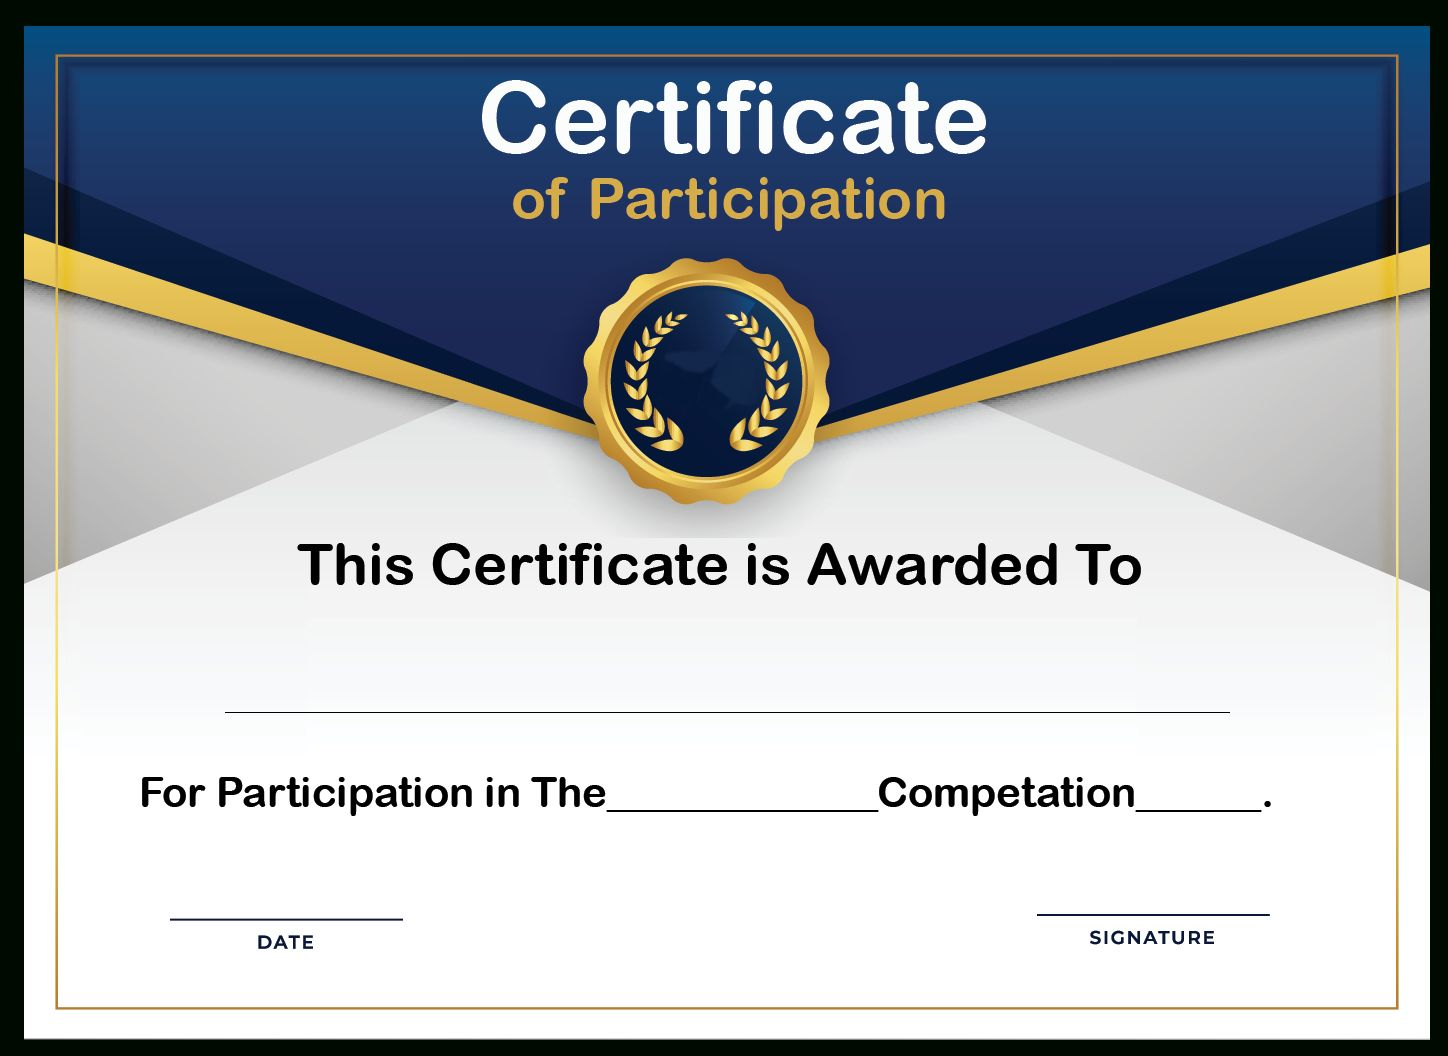 Free Sample Format Of Certificate Of Participation Template With Sample Certificate Of Participation Template Free Printable Certificates Certificate Templates